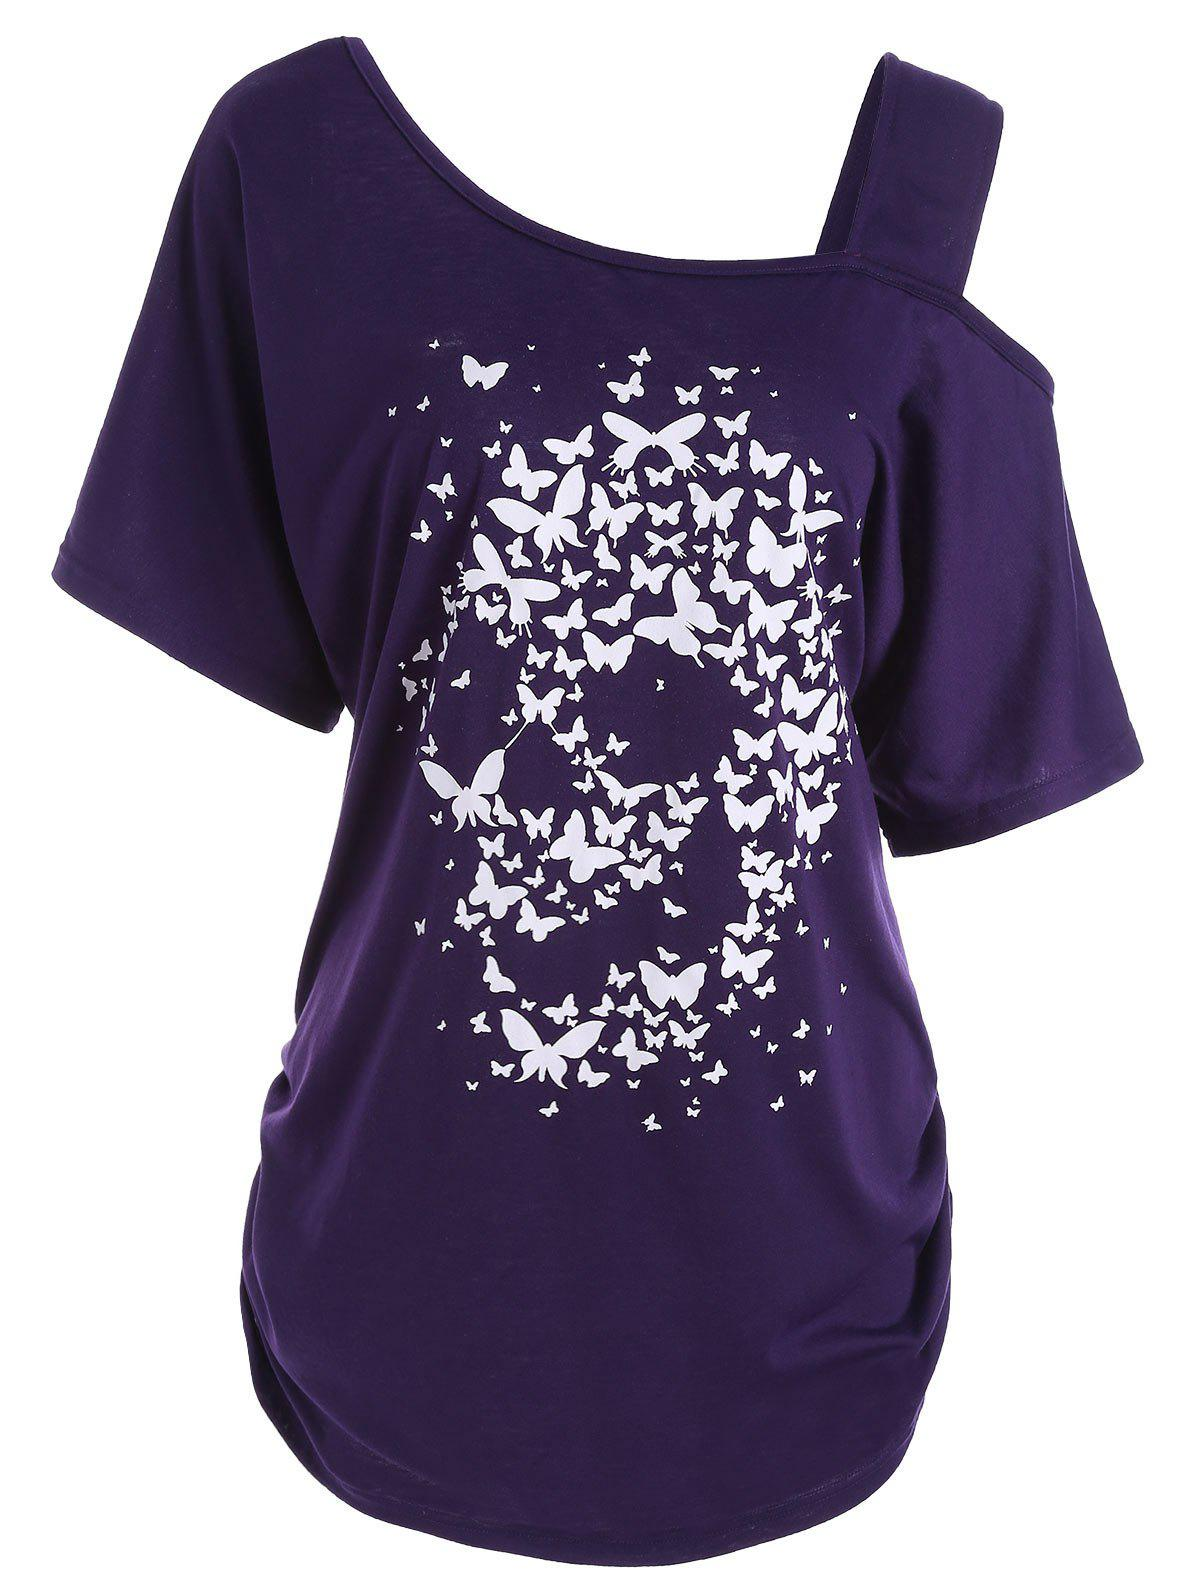 Skull Butterfly Print Skew Neck Plus Size TopWOMEN<br><br>Size: 2XL; Color: PURPLE; Material: Polyester; Shirt Length: Long; Sleeve Length: Short; Collar: Skew Collar; Style: Casual; Season: Summer; Pattern Type: Skulls; Weight: 0.4000kg; Package Contents: 1 x Tee;